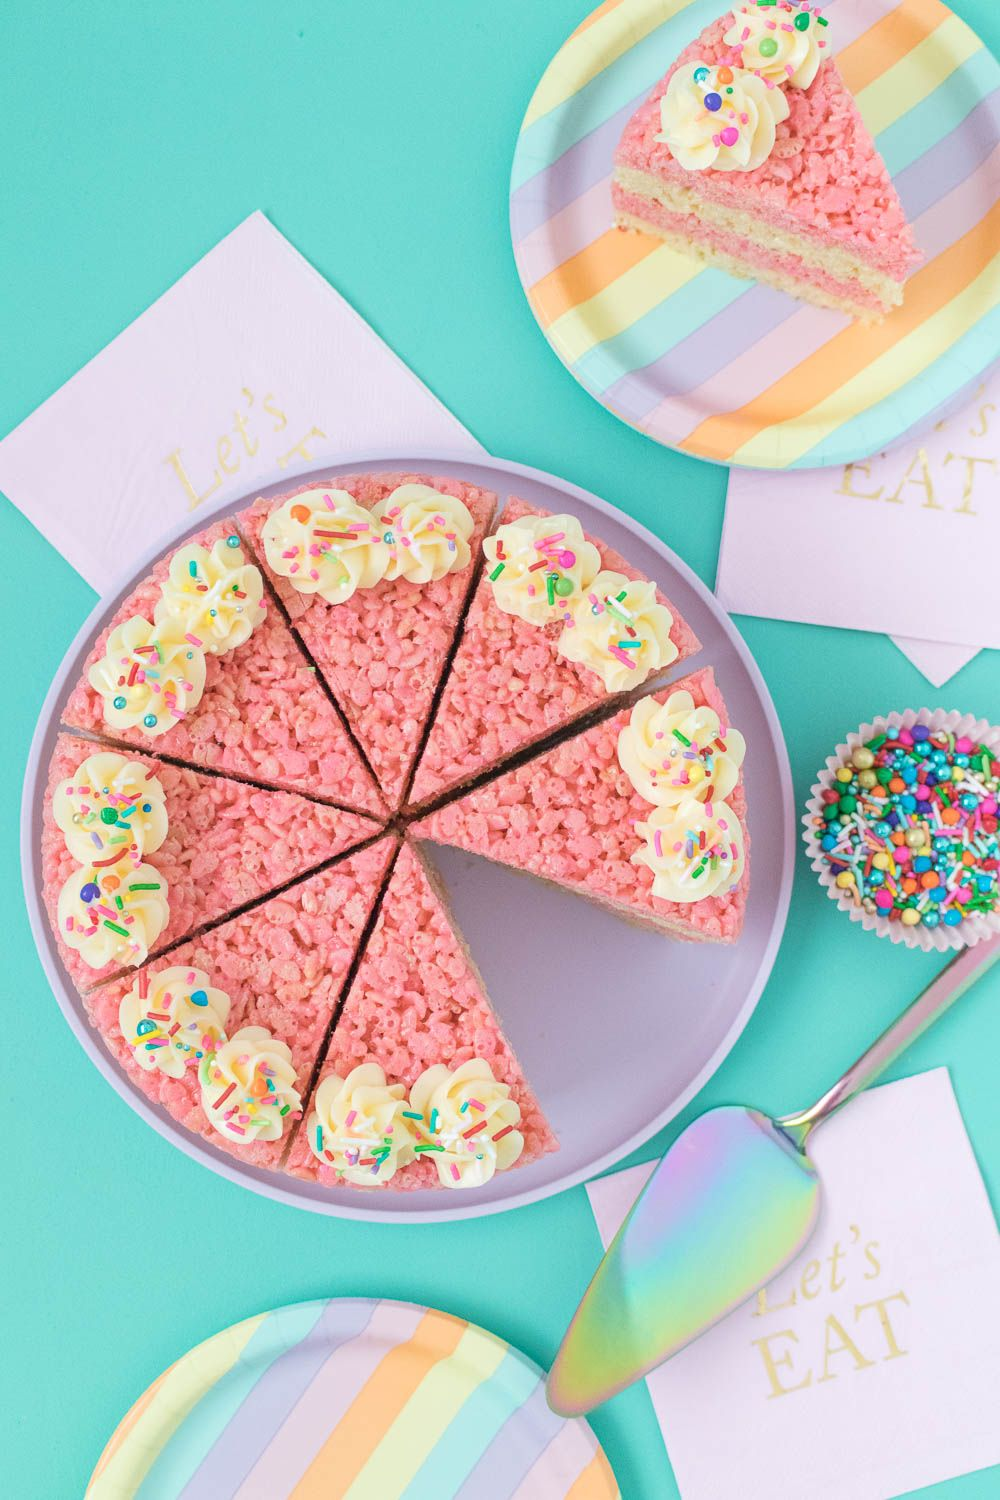 Swell Cake Slice Rice Krispies Treats Recipe With Images Rice Funny Birthday Cards Online Sheoxdamsfinfo